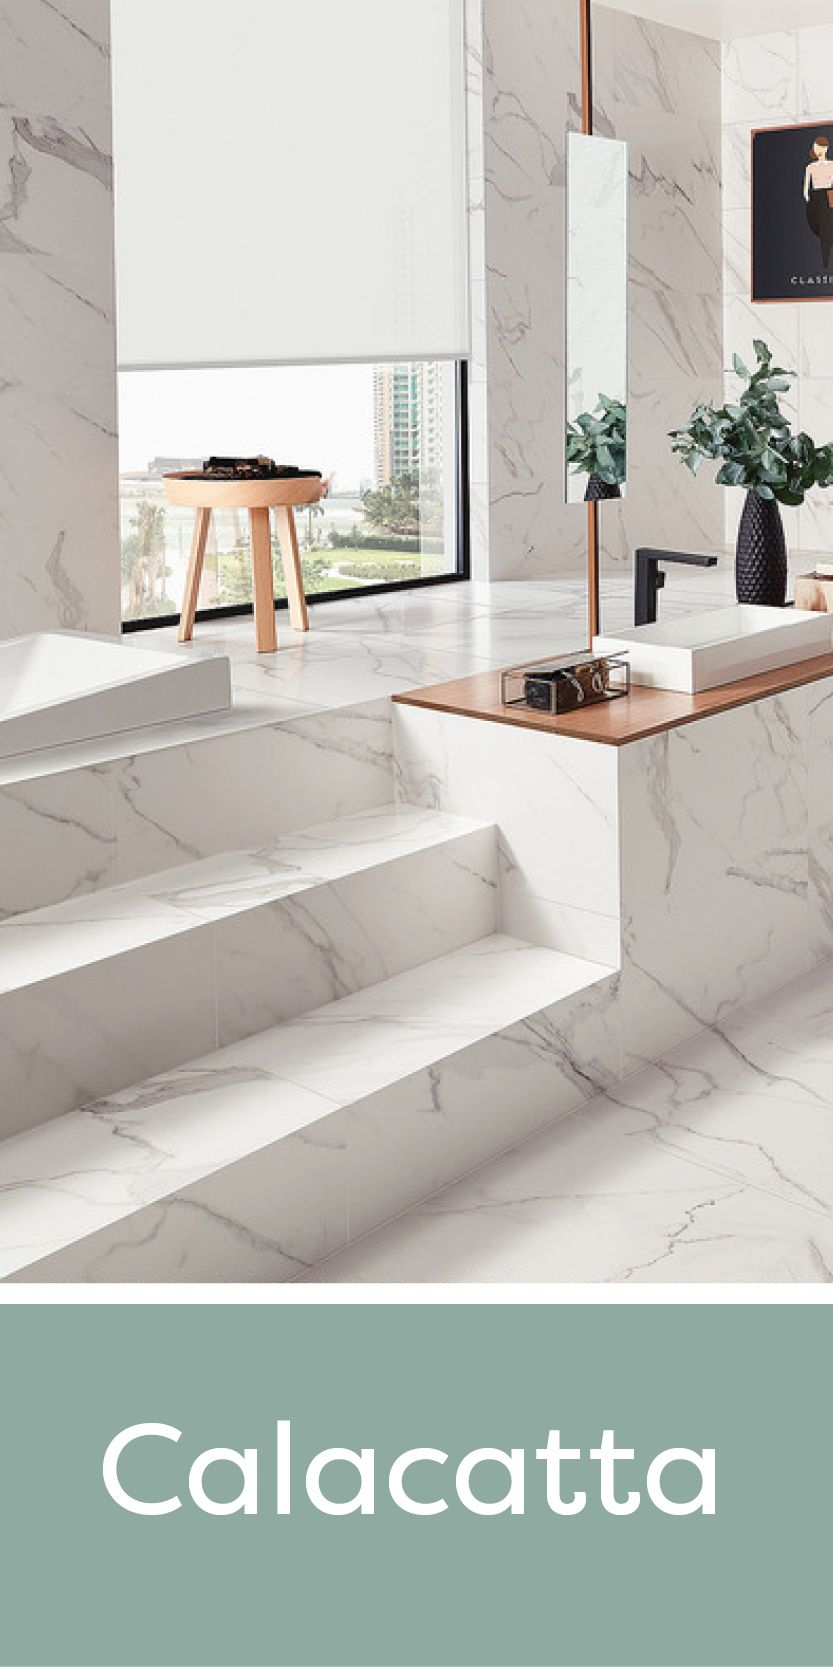 Our Calacatta range features a matching marble effect wall